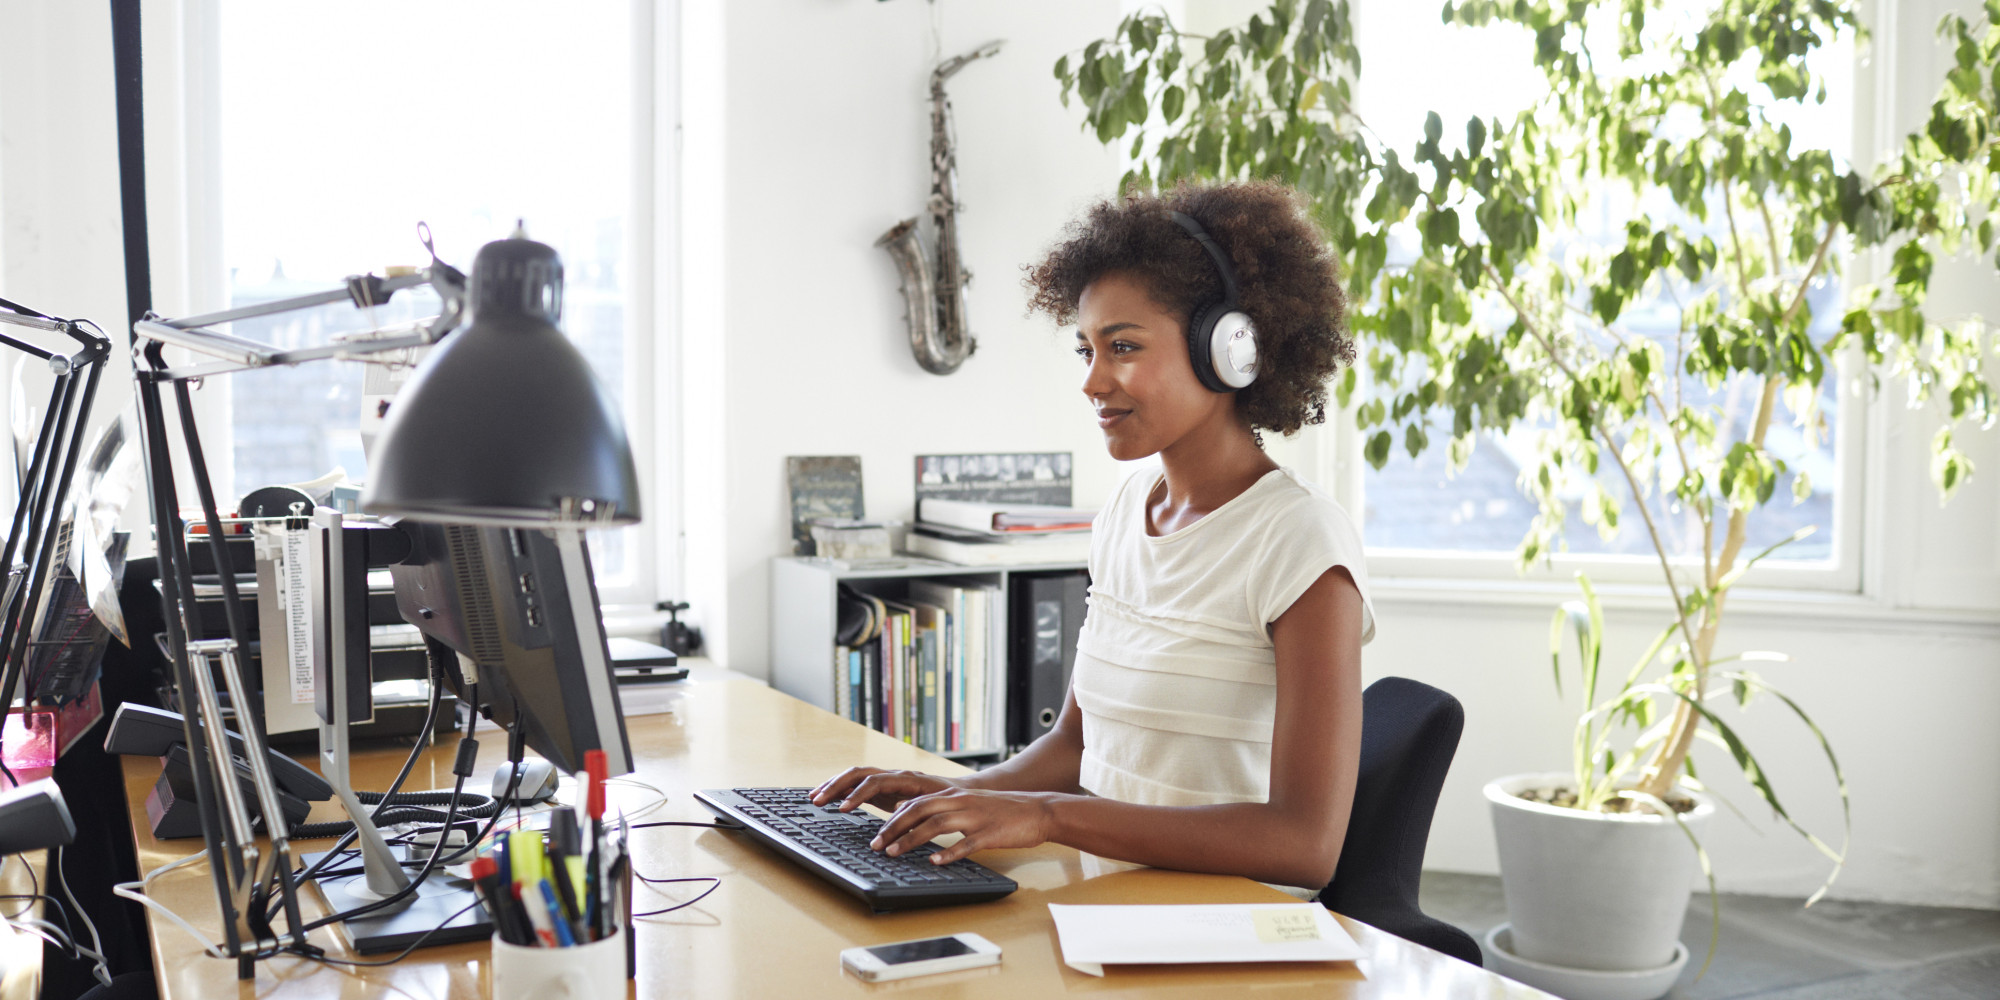 Businesswoman with headphones typing on keyboard.